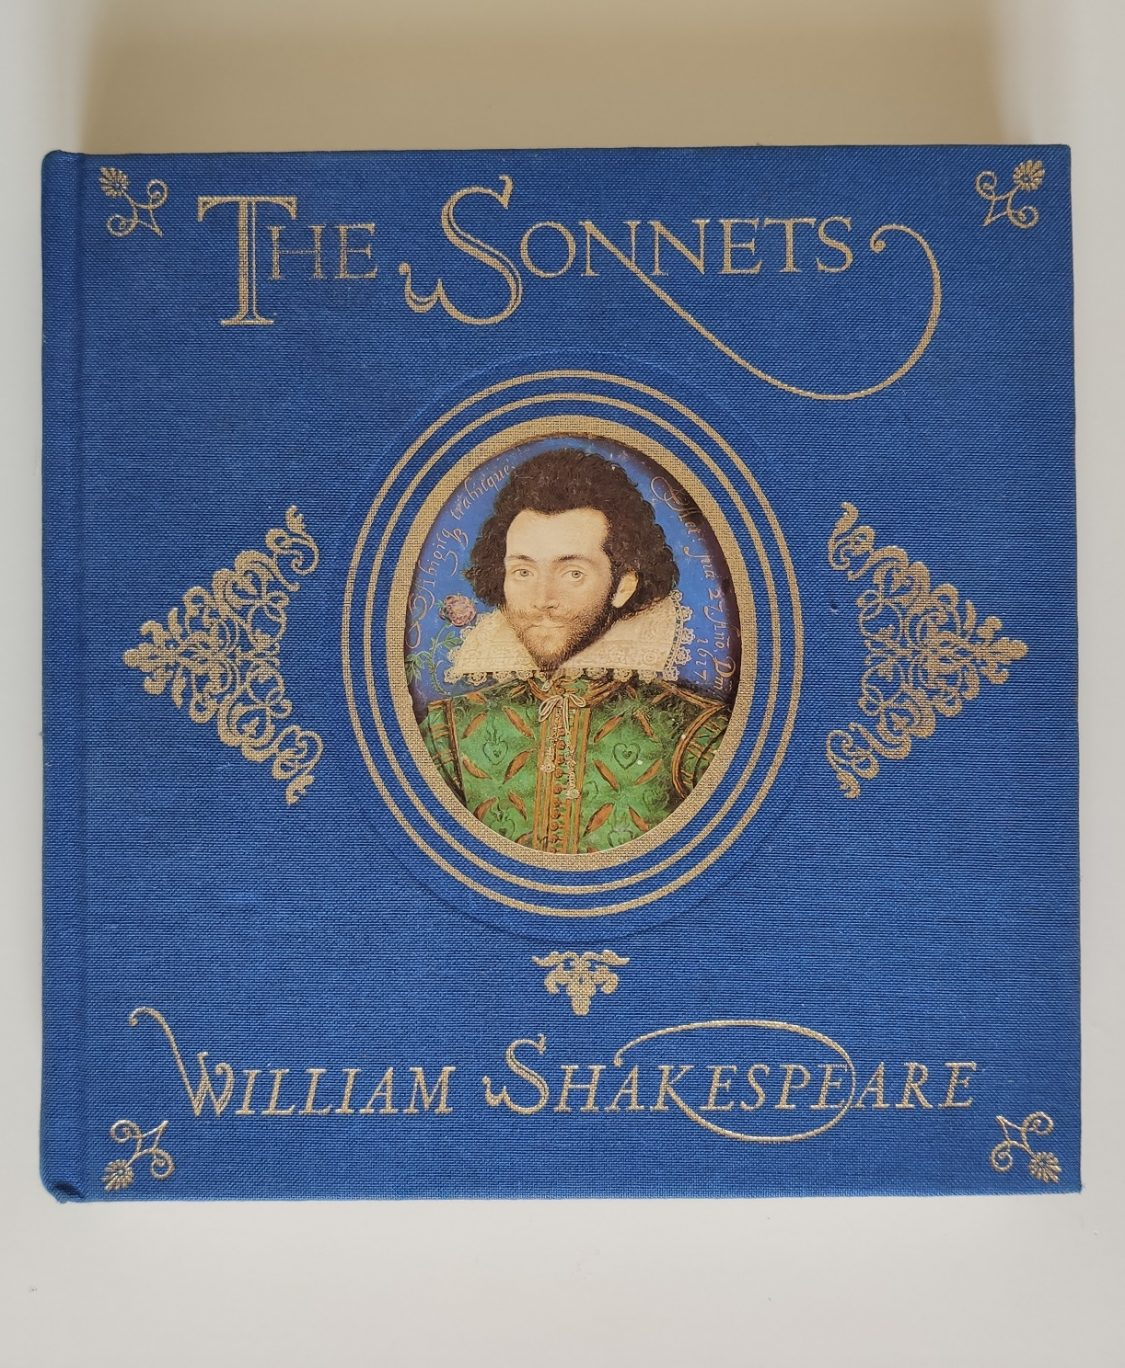 SATURDAY SHOUT-OUT: Isolation Sonnets